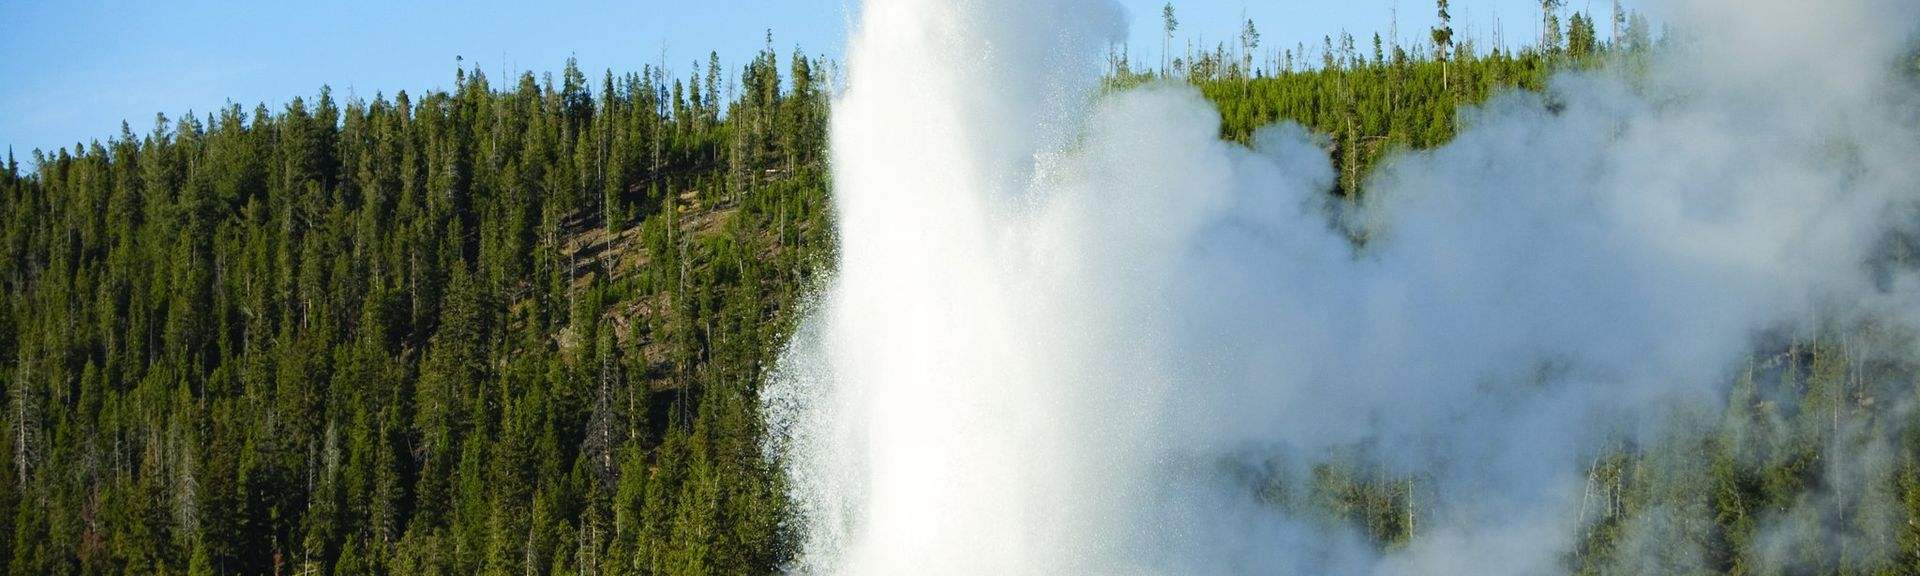 Giant Geyser, Yellowstone National Park, WY, USA